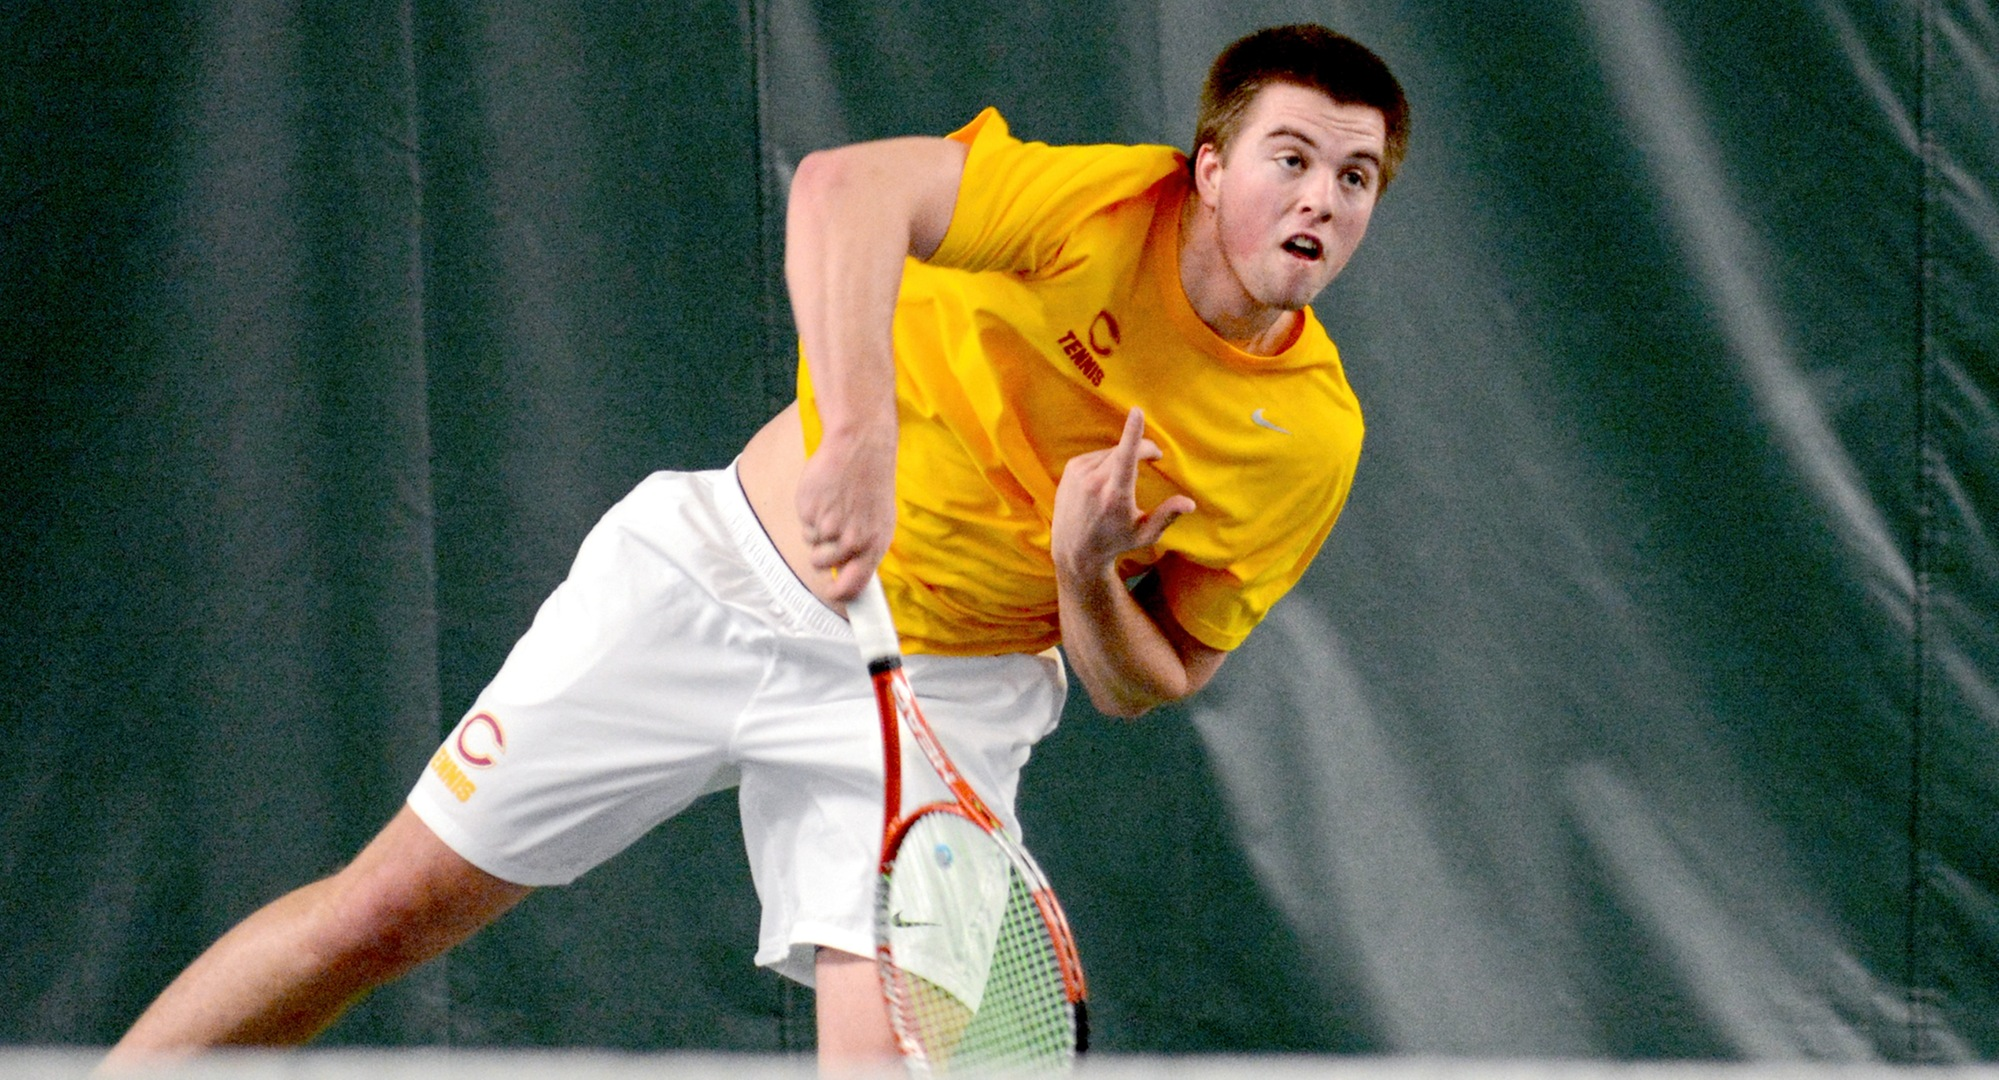 Junior Isaac Toivonen won in a super-set tie-breaker at No.1 singles to remain unbeaten in singles play in 2017.